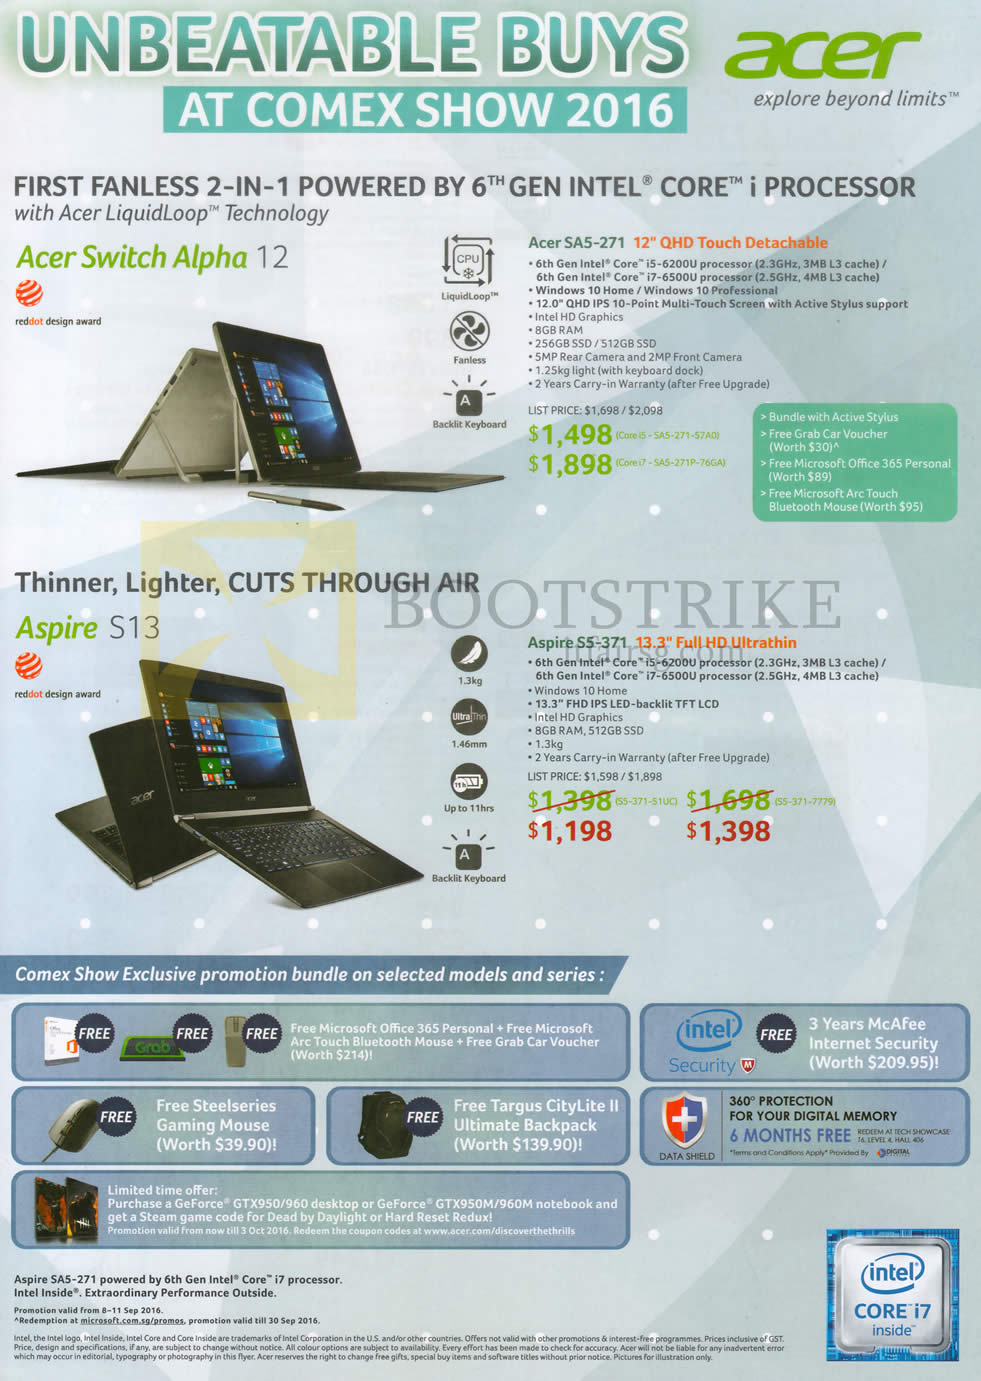 COMEX 2016 price list image brochure of Acer Notebooks Switch Alpha 12 SA5-271, Aspire S13 S5-371, Promotion Bundles